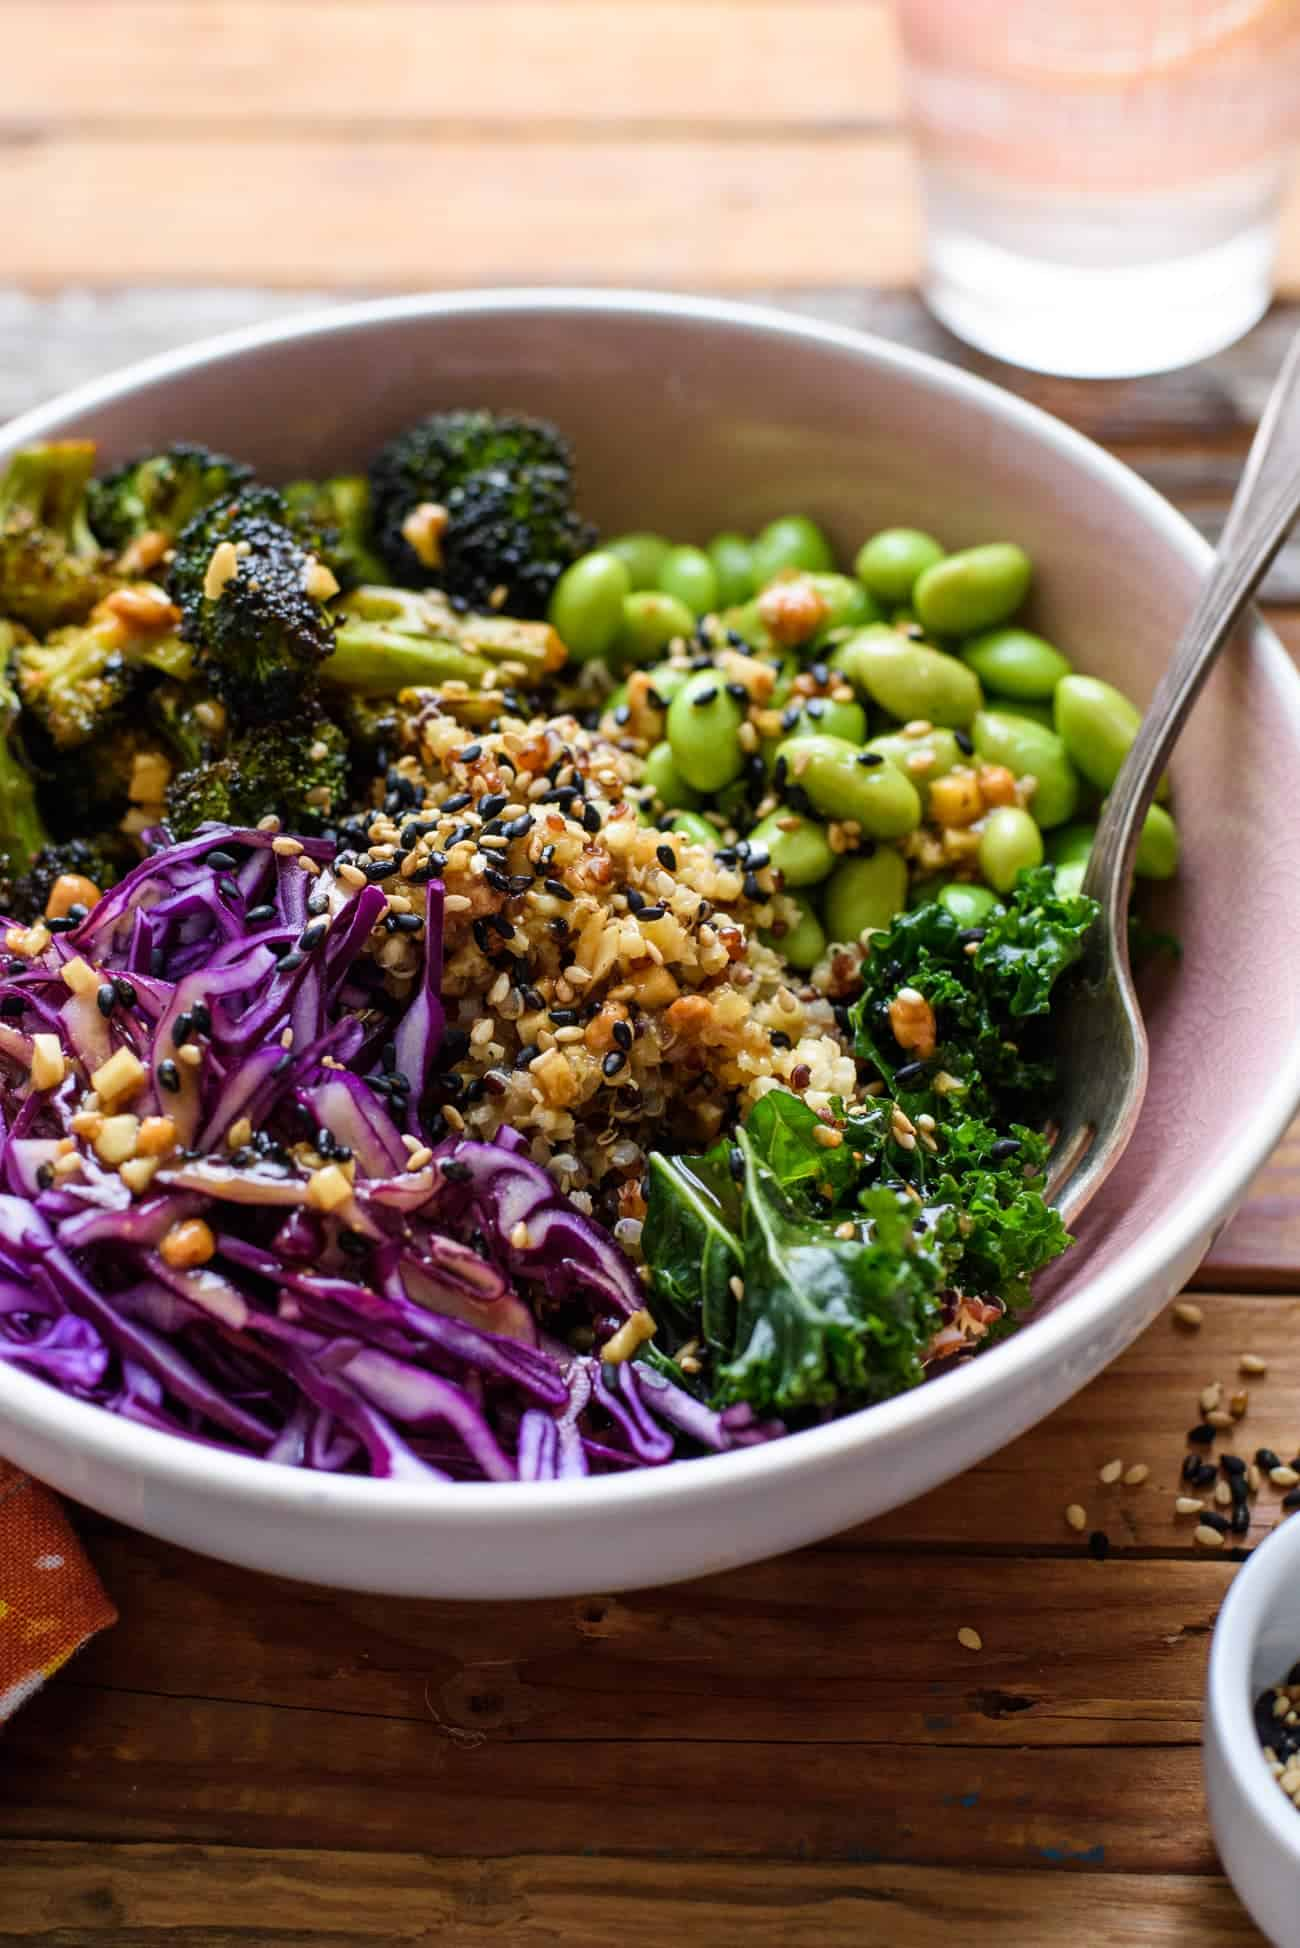 Close-up of vegan Asian-style grain bowl with edamame and purple cabbage